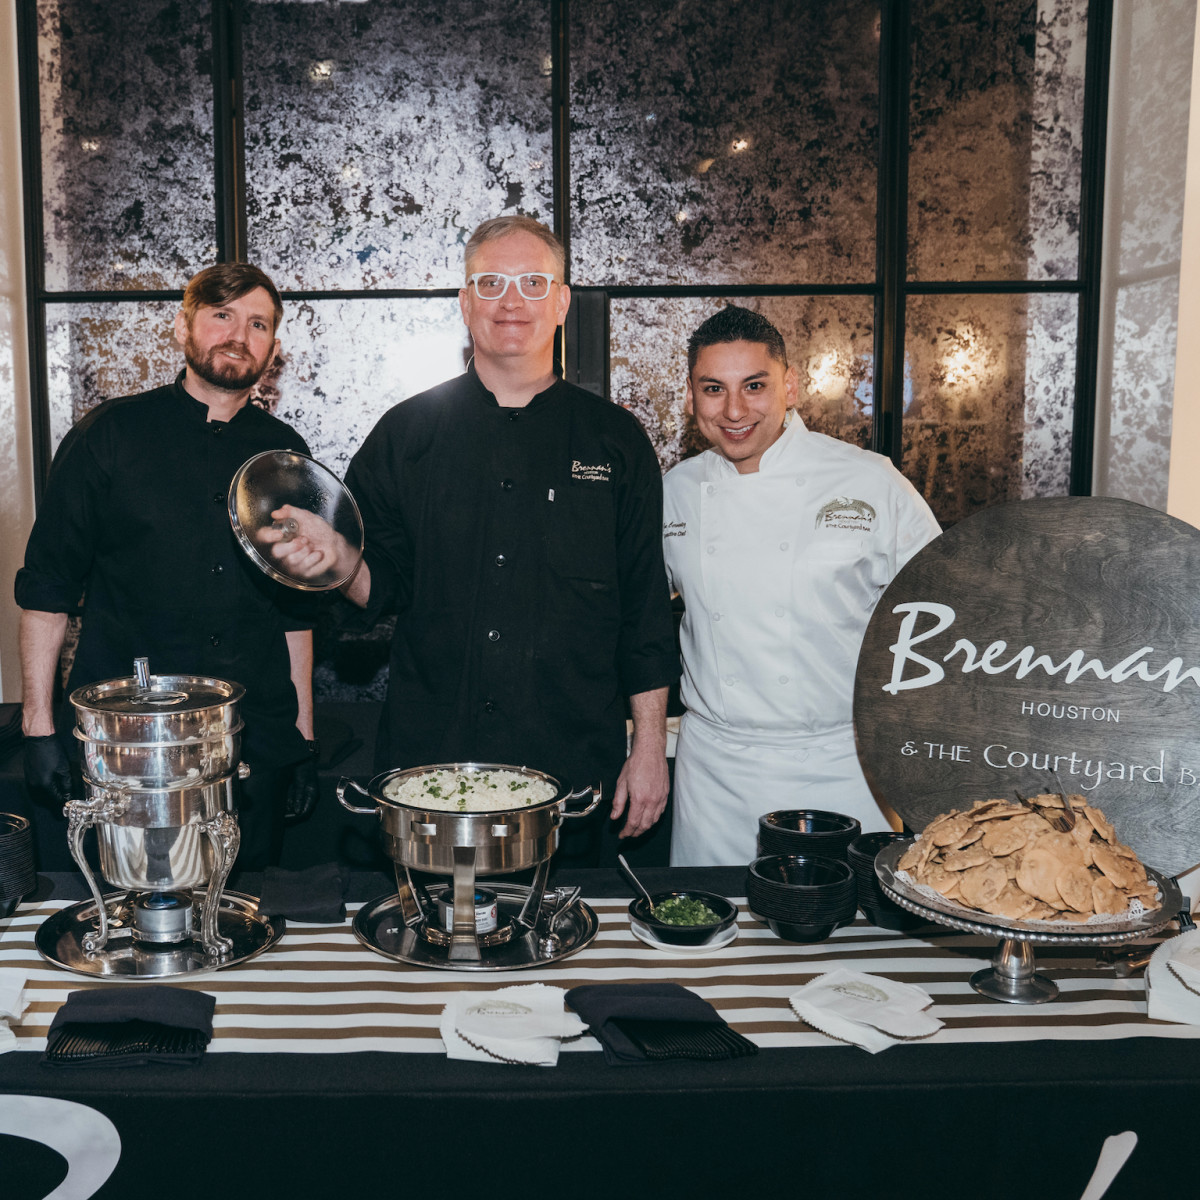 Texas Childrens Cooking up a Cure Brennan's